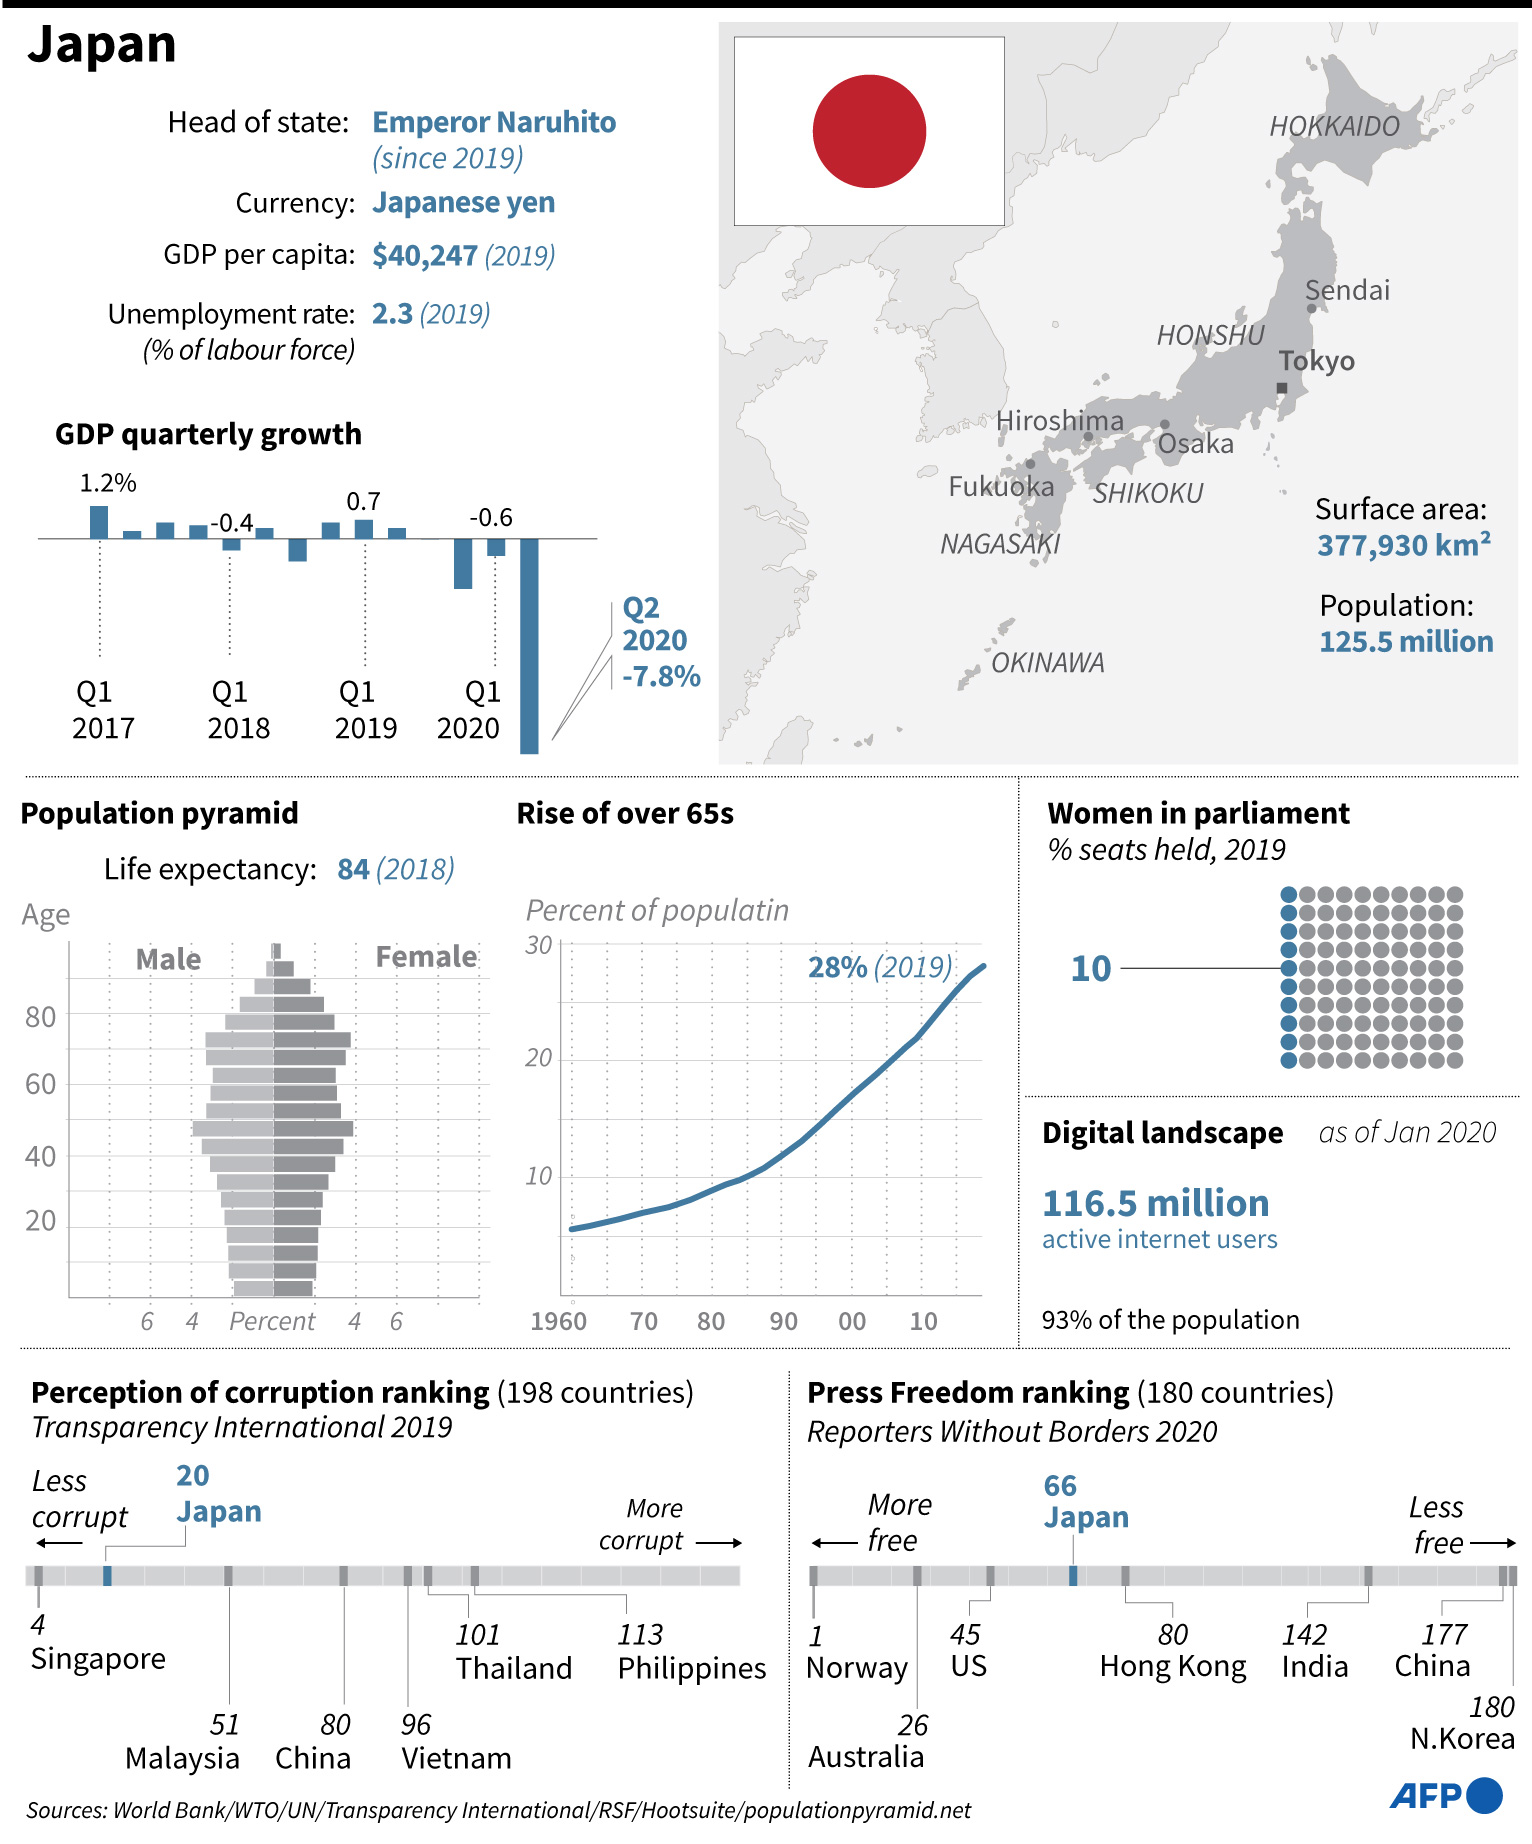 Socio-economic profile of Japan